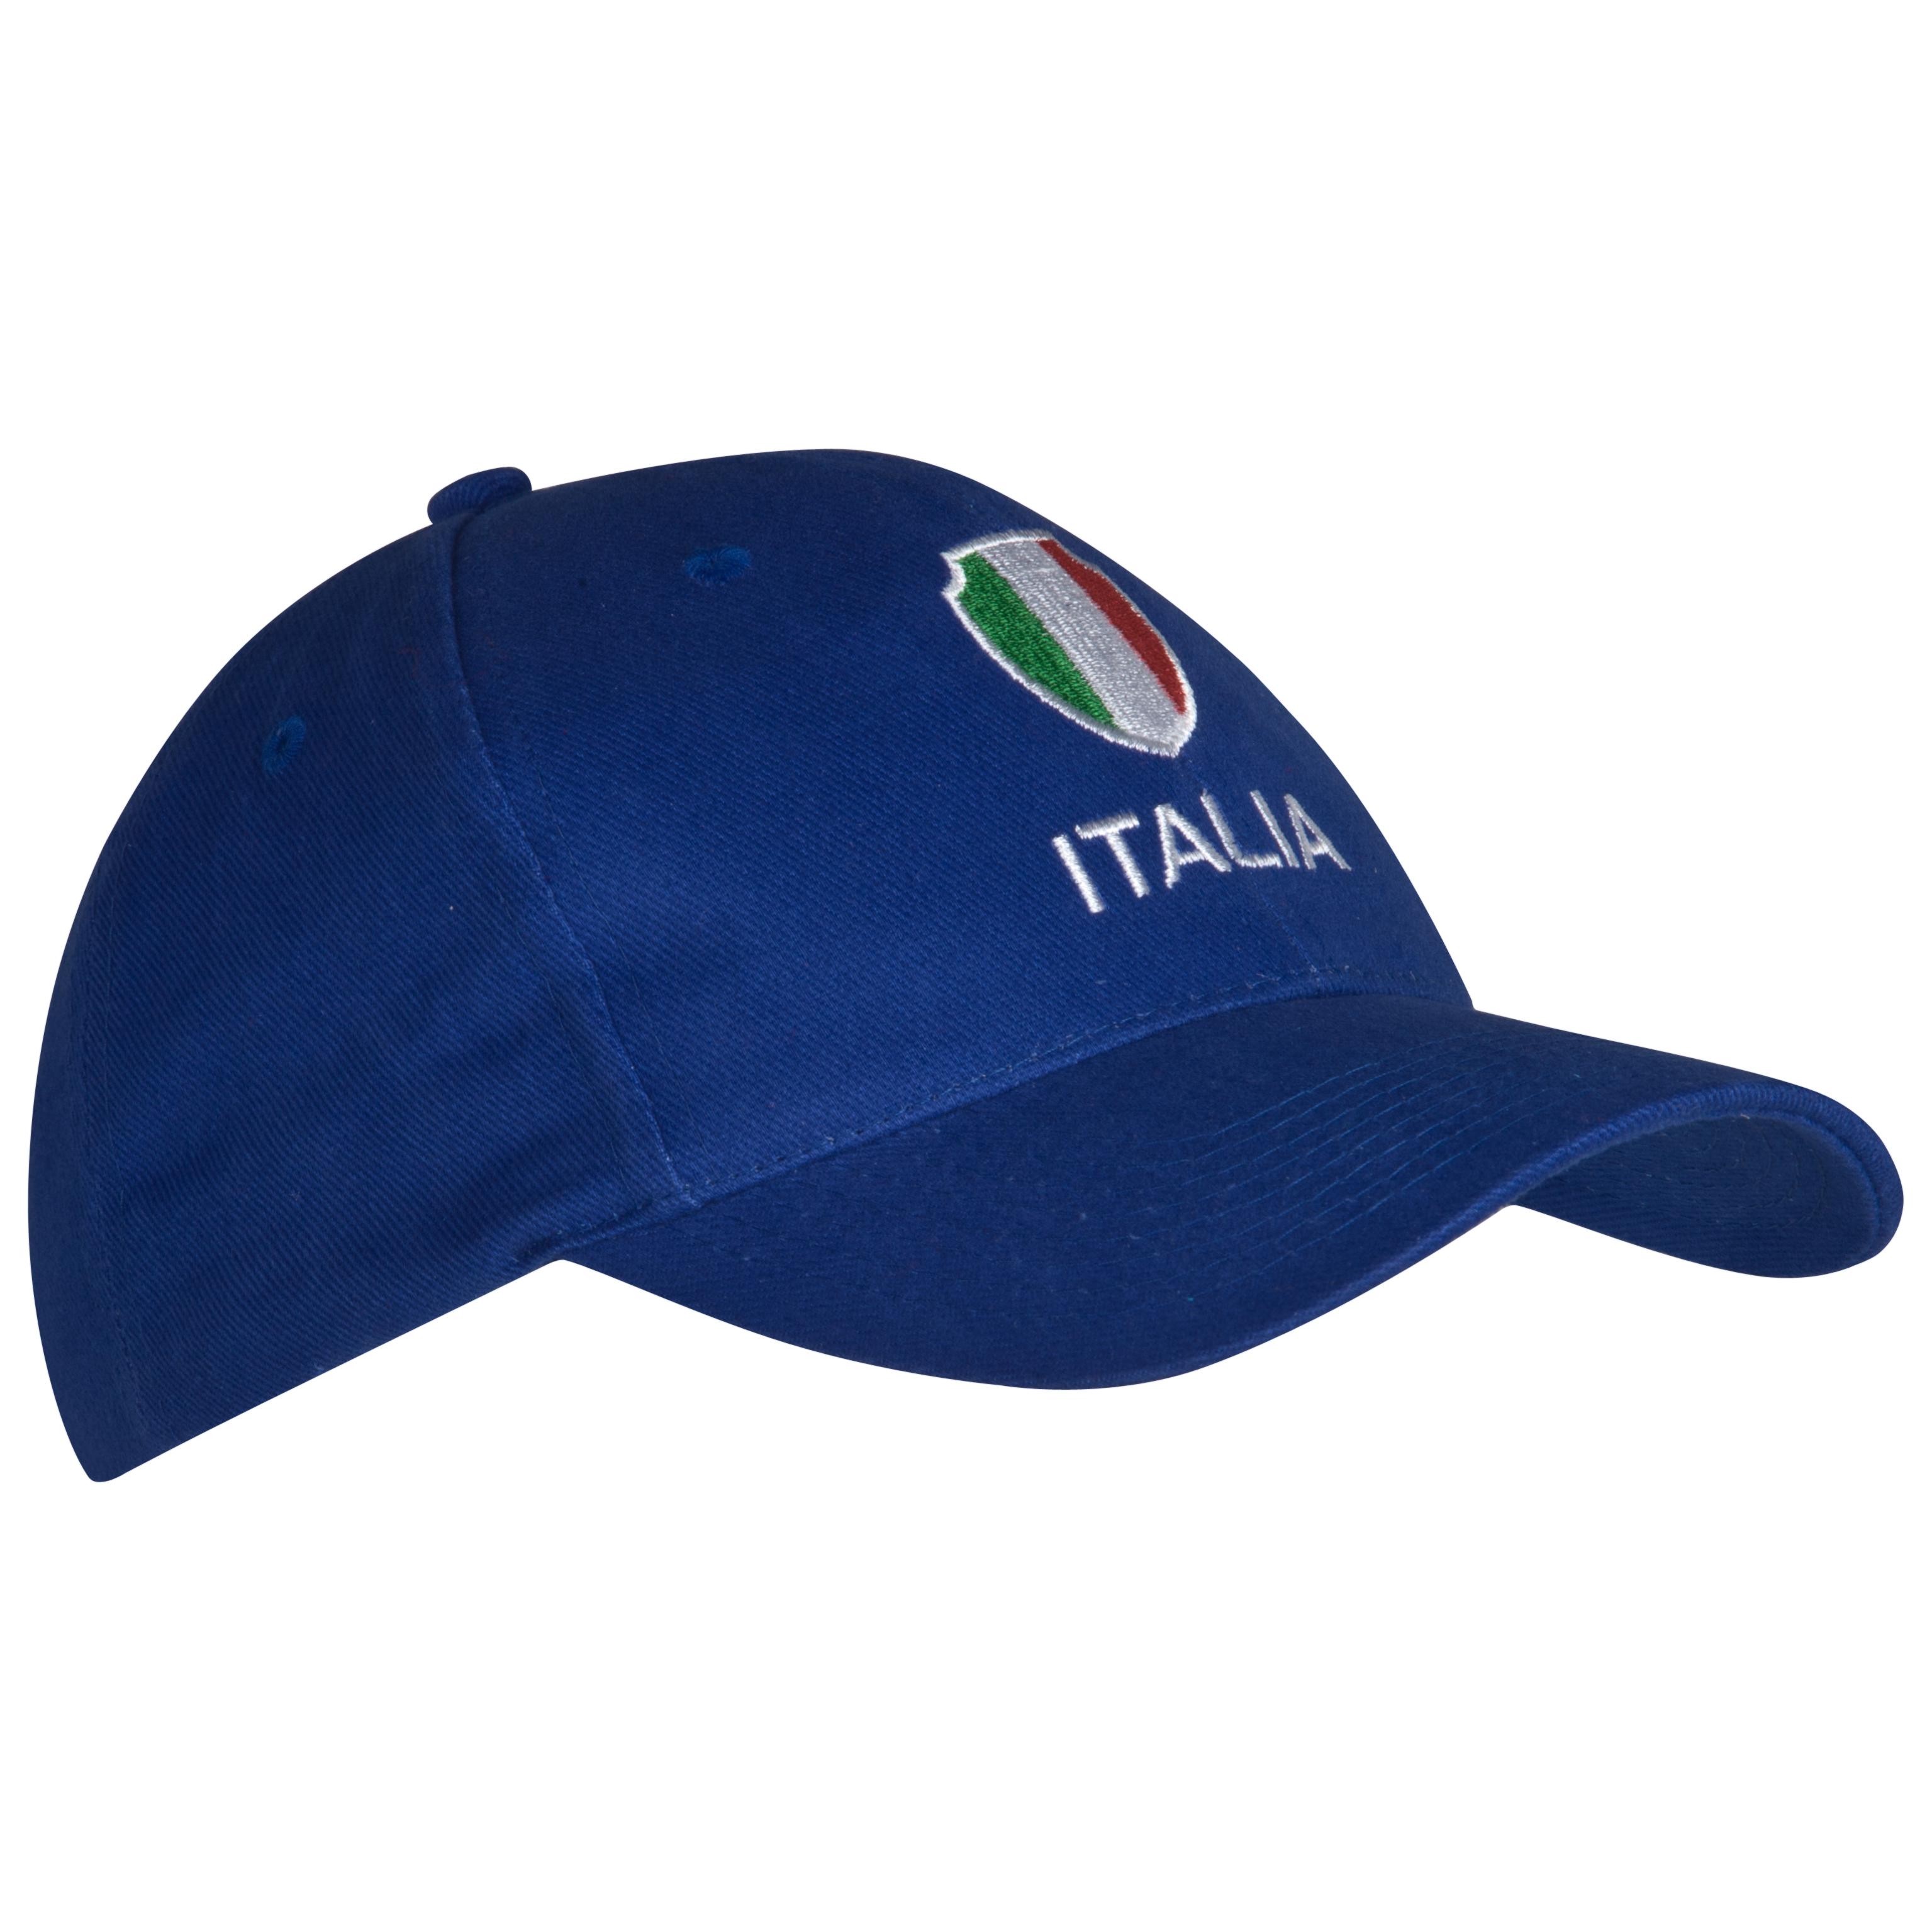 Euro 2012 Italy Cap - Blue/White/Green